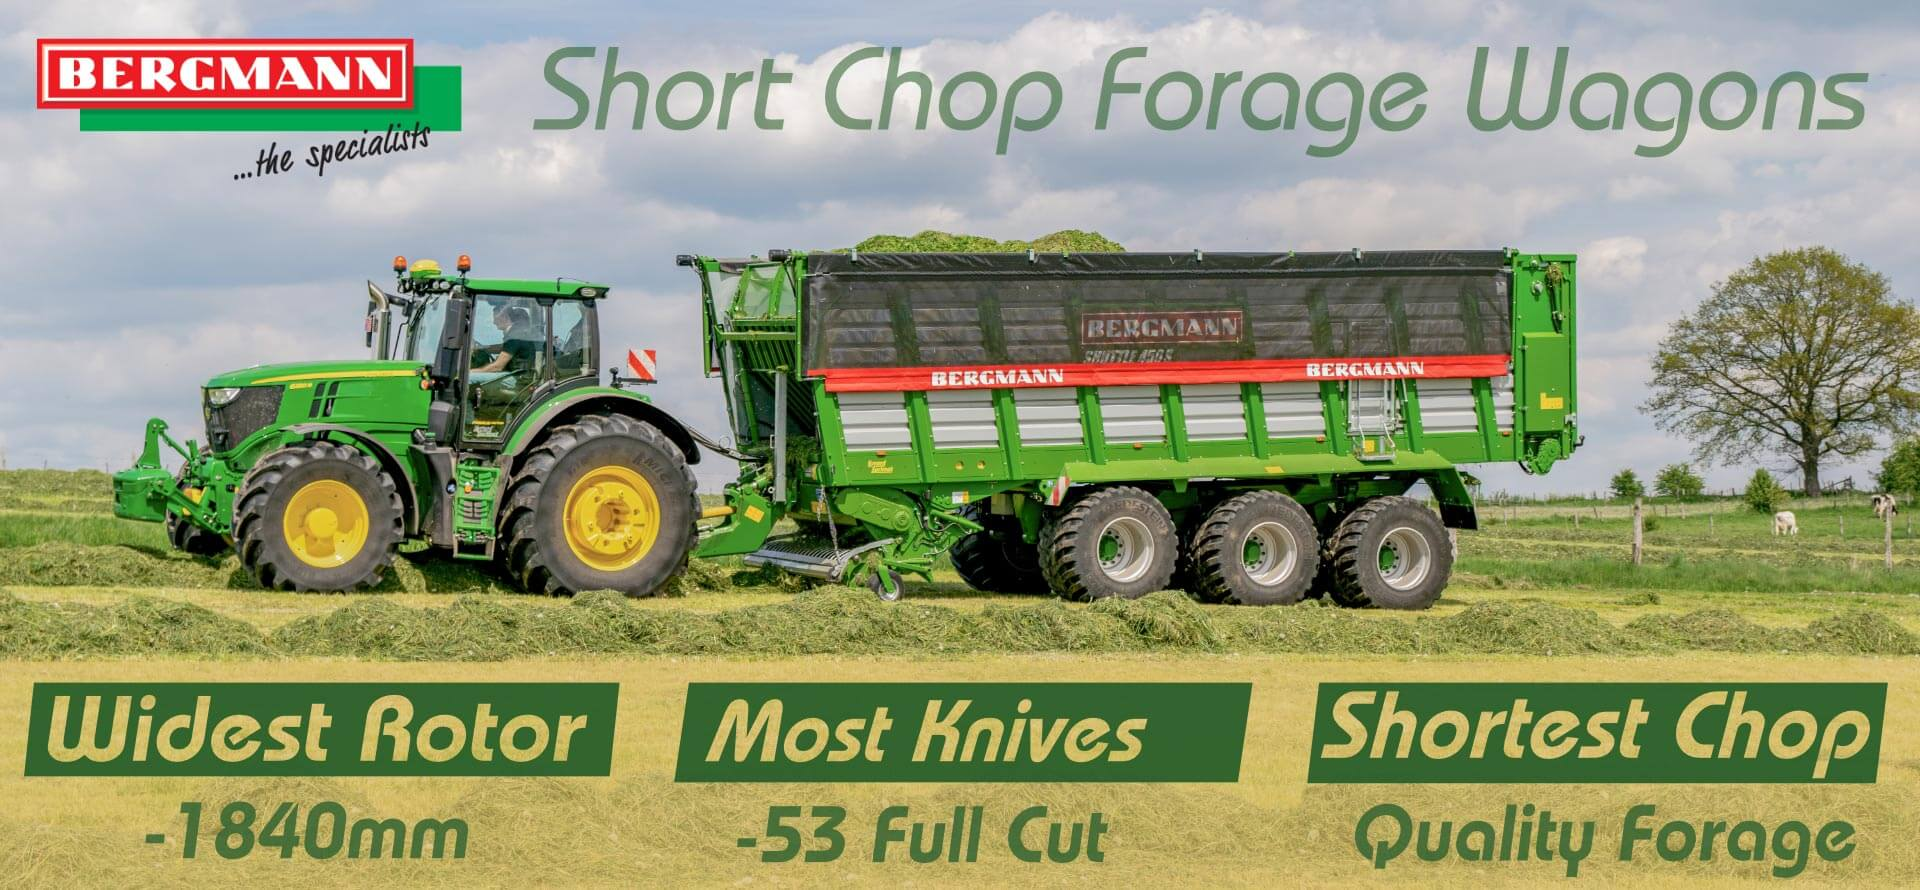 Short chop forge wagons